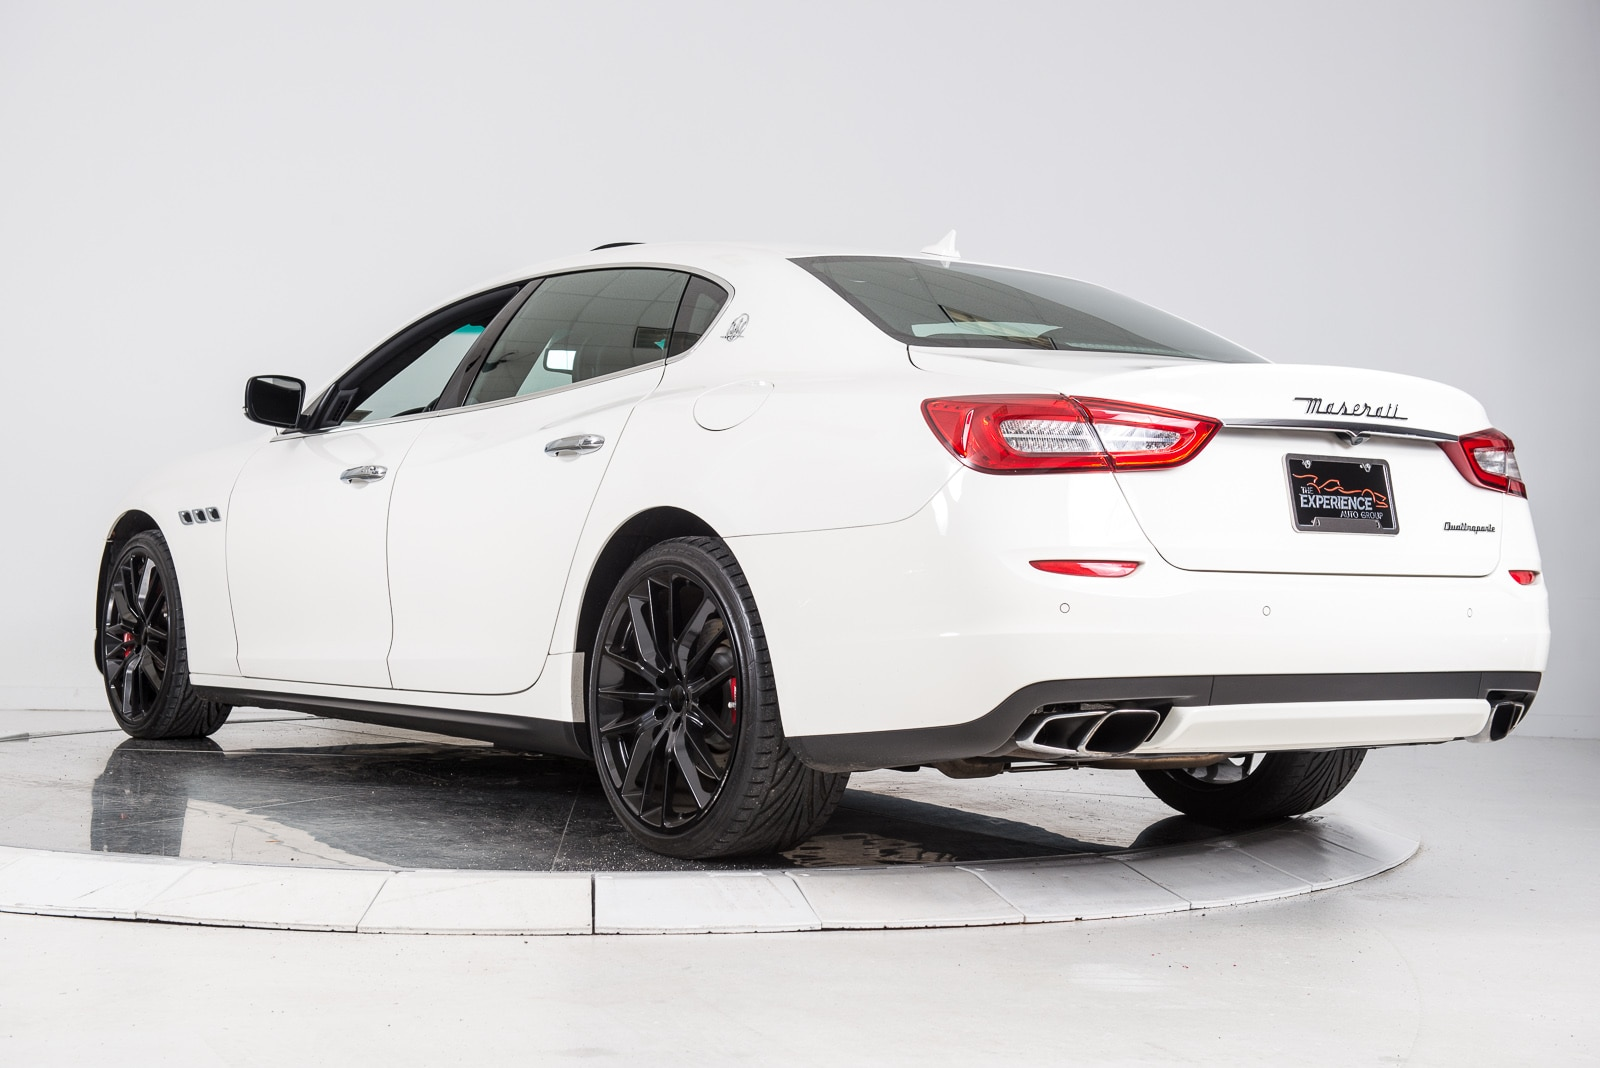 used 2014 maserati quattroporte gts for sale plainview. Black Bedroom Furniture Sets. Home Design Ideas